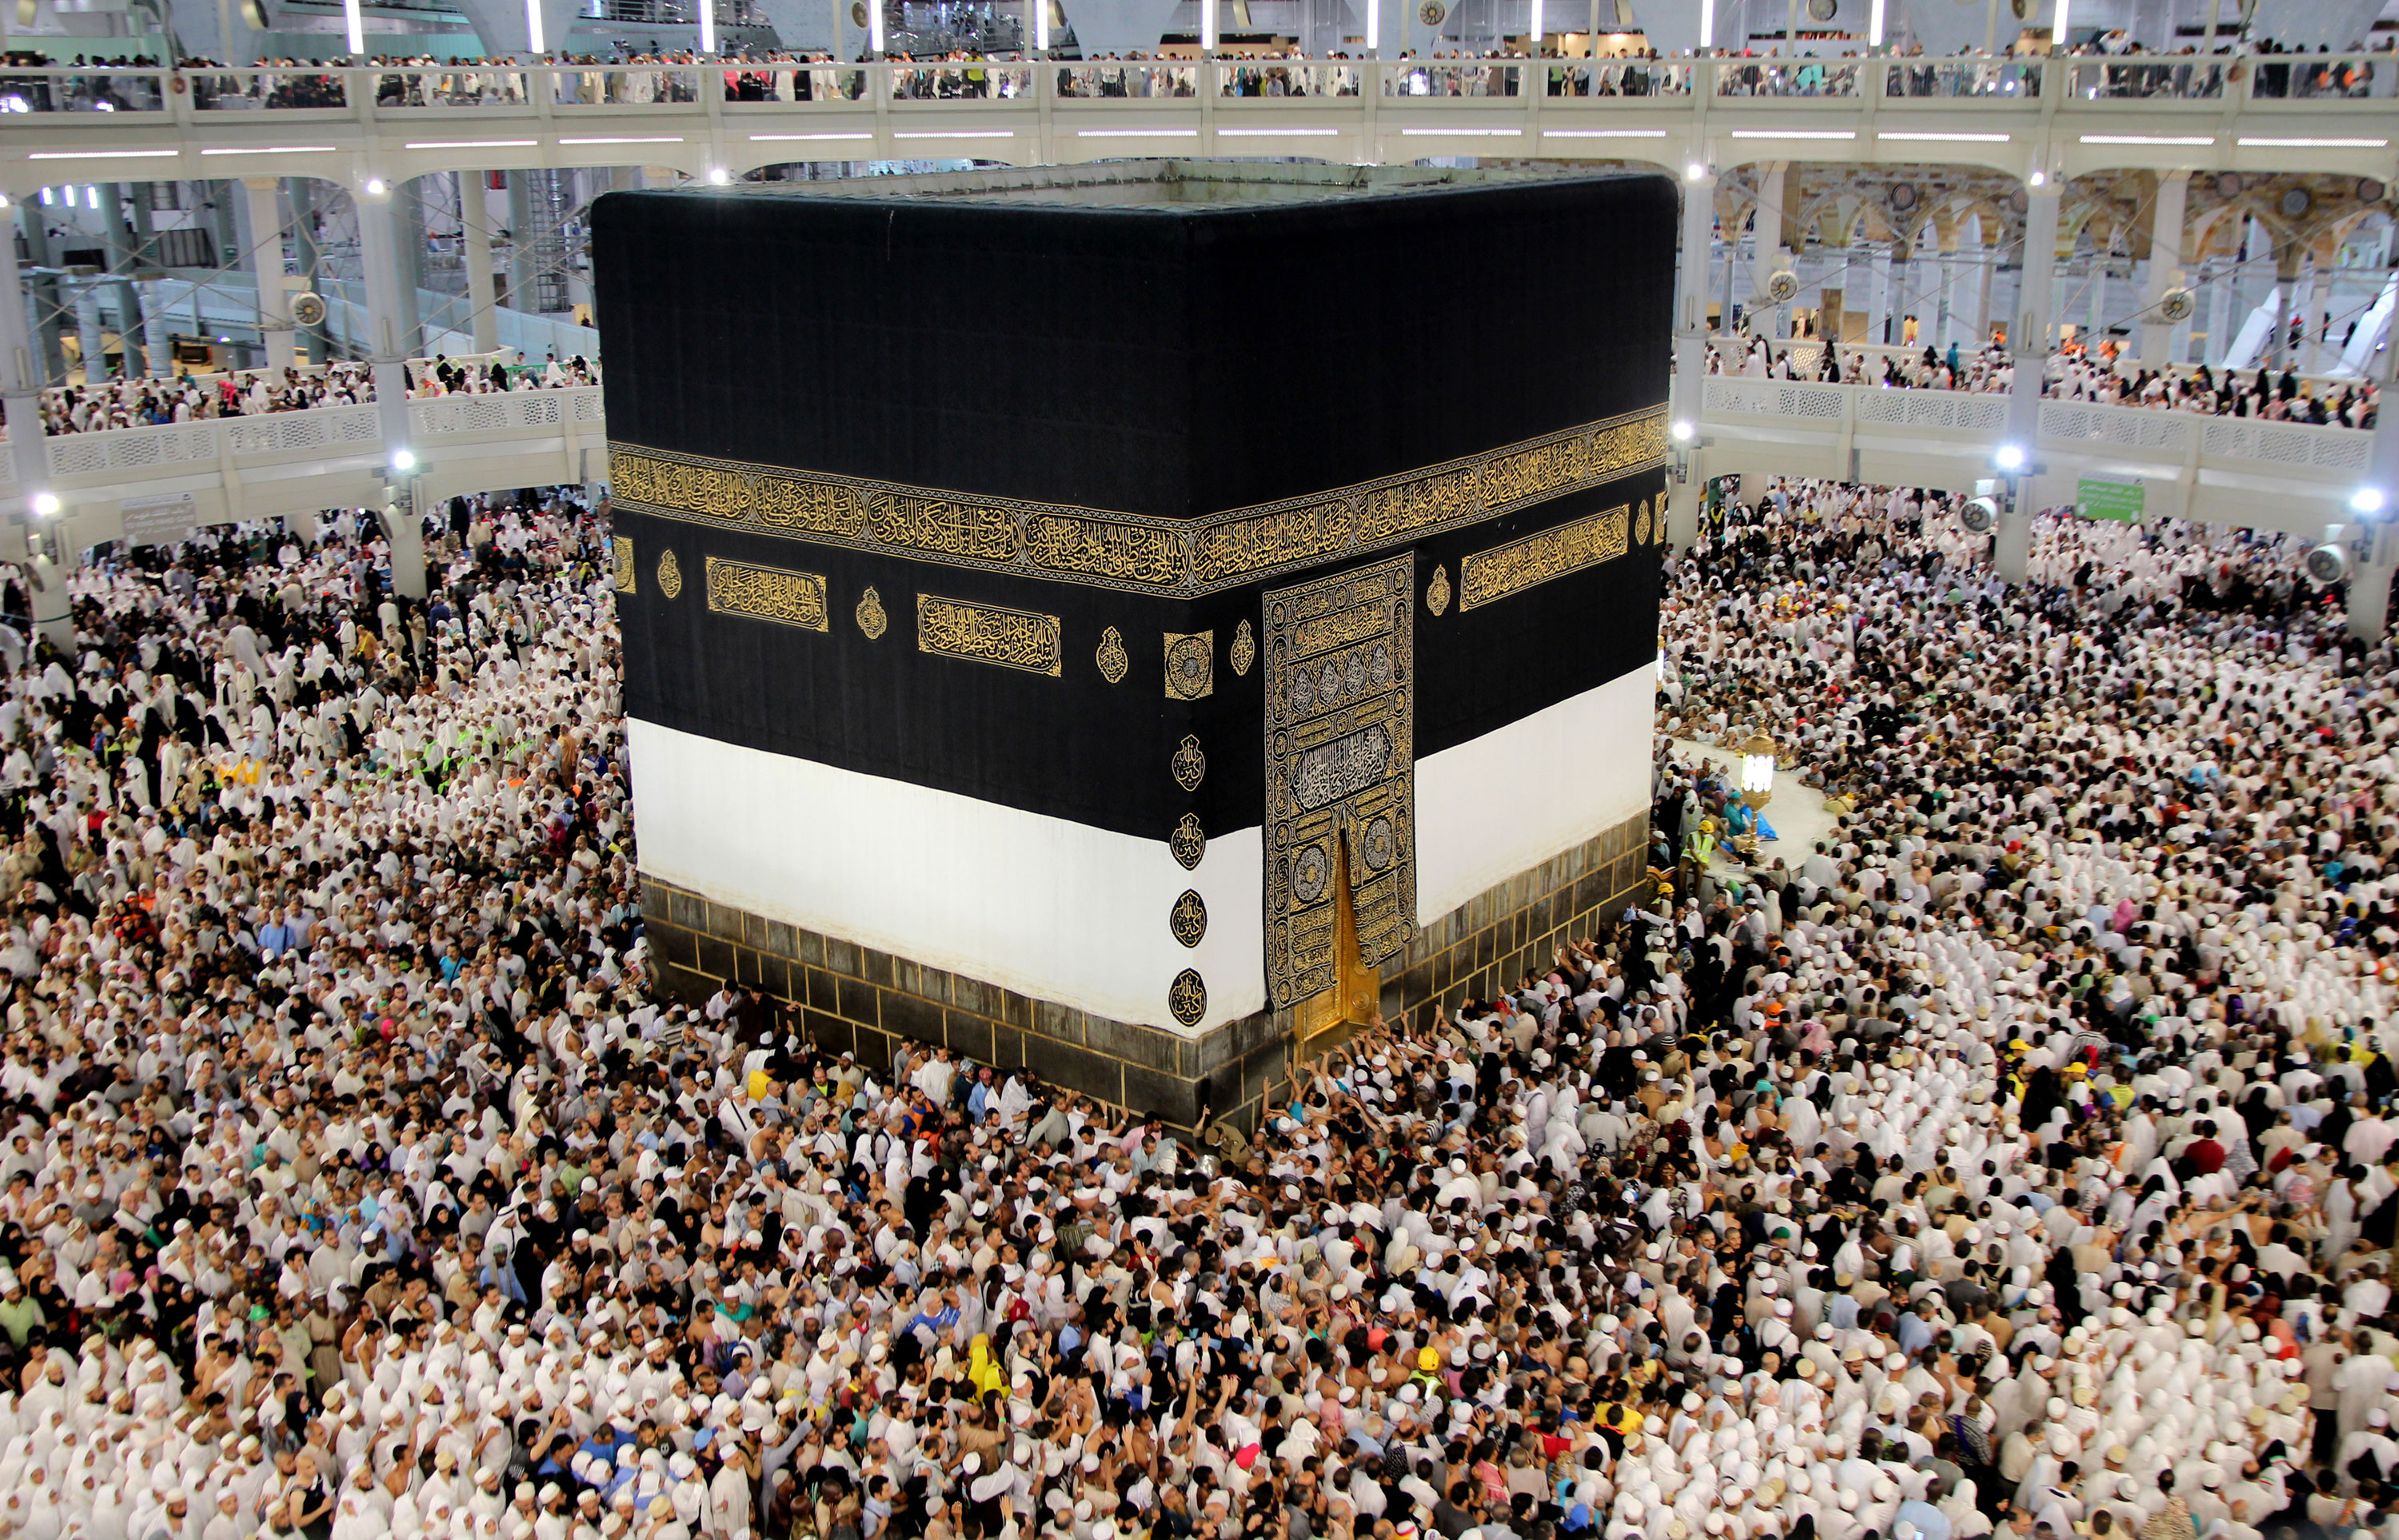 Pilgrims flock to Mecca each year for Hajj